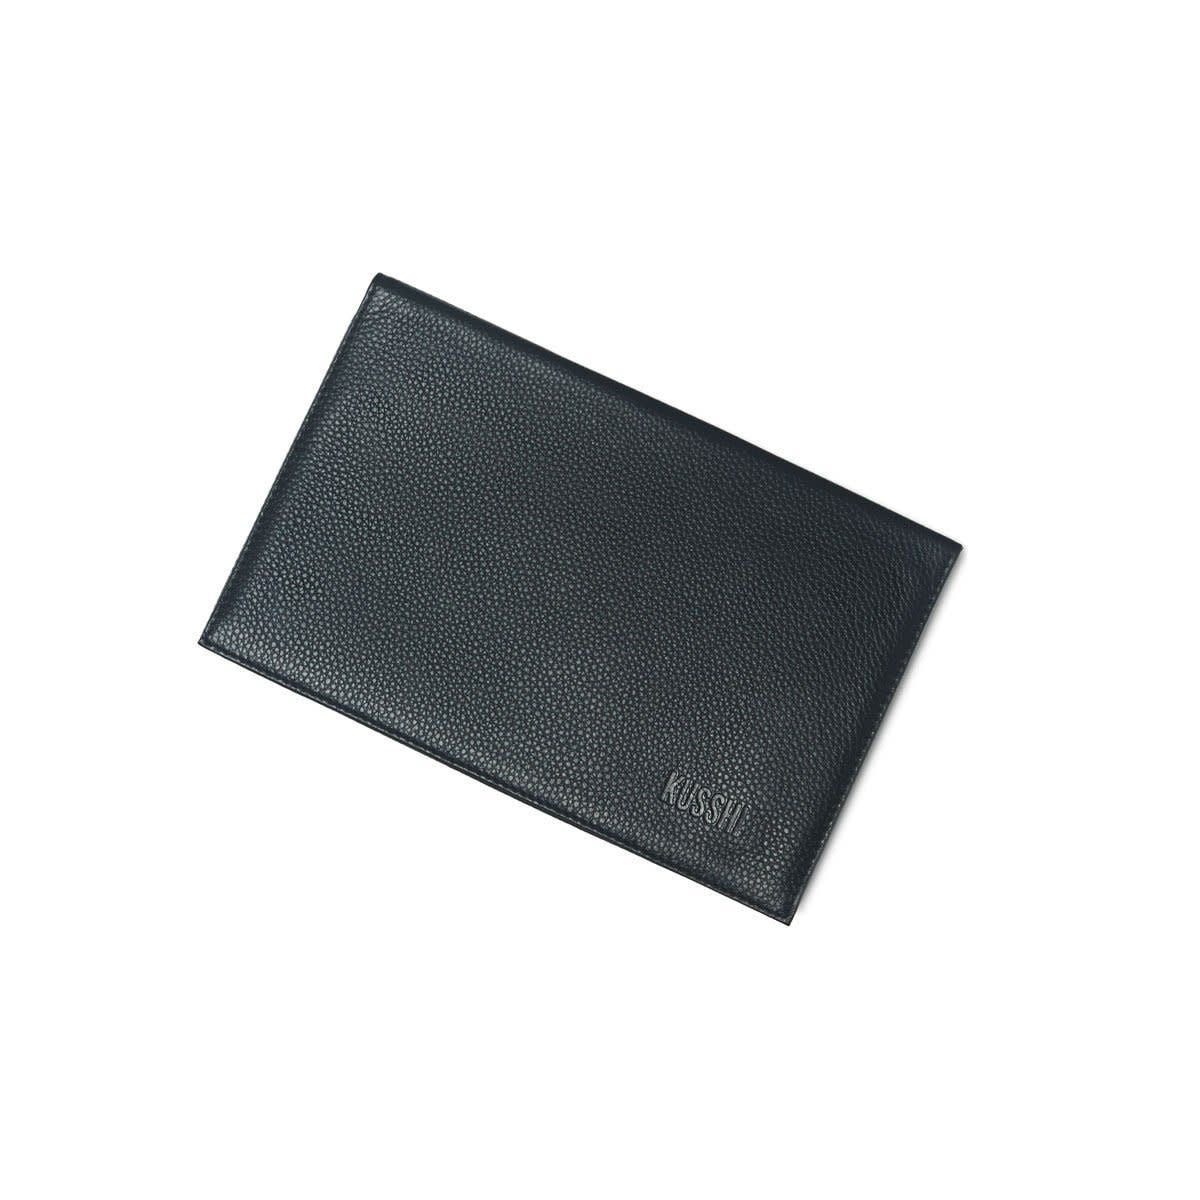 CLUTCH COVER BLACK LEATHER